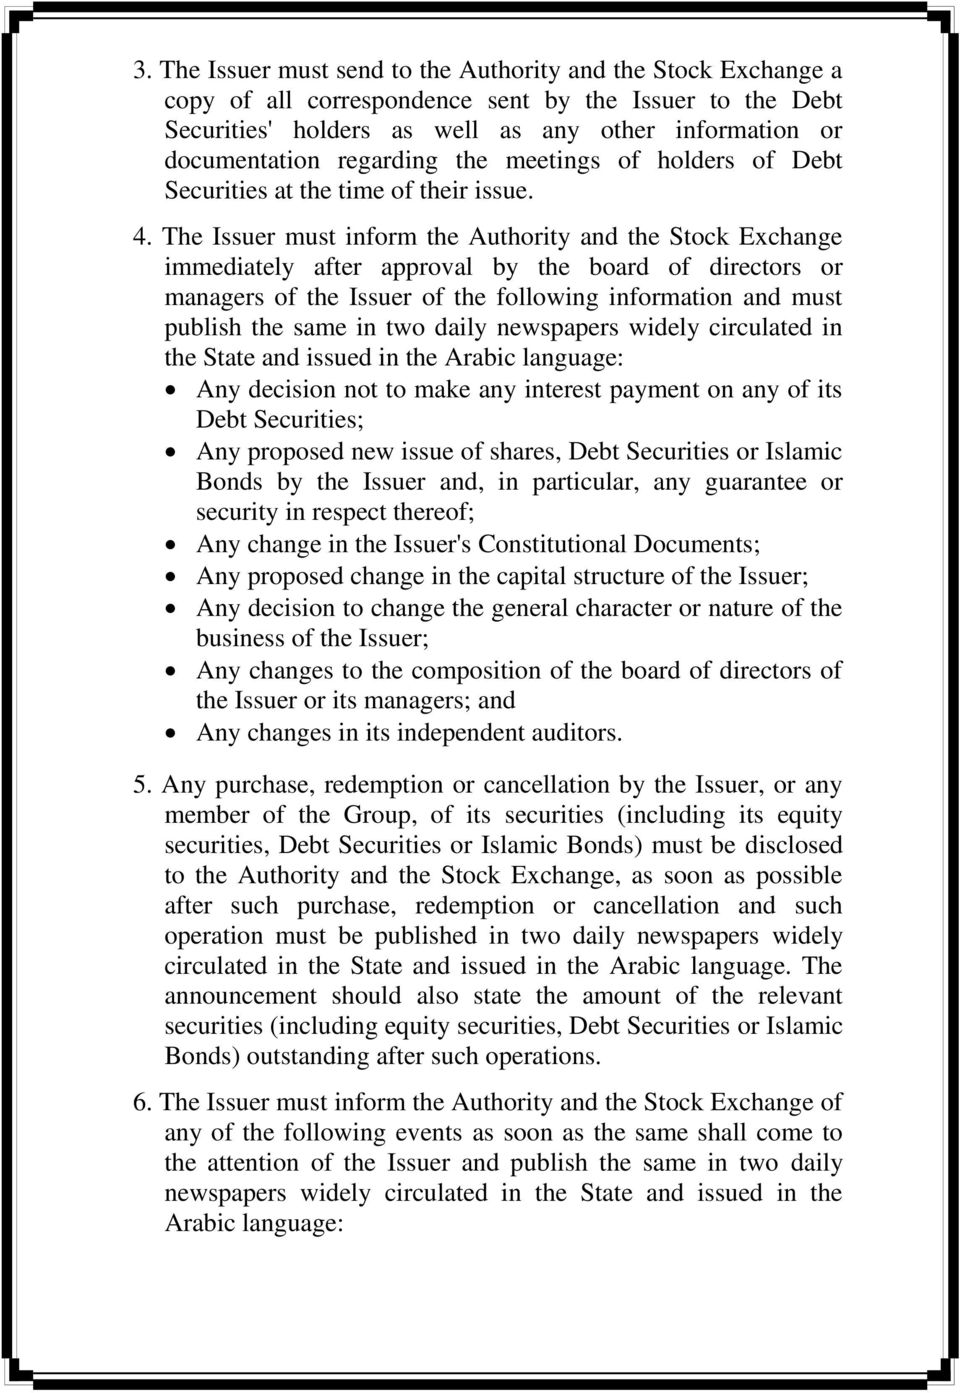 The Issuer must inform the Authority and the Stock Exchange immediately after approval by the board of directors or managers of the Issuer of the following information and must publish the same in